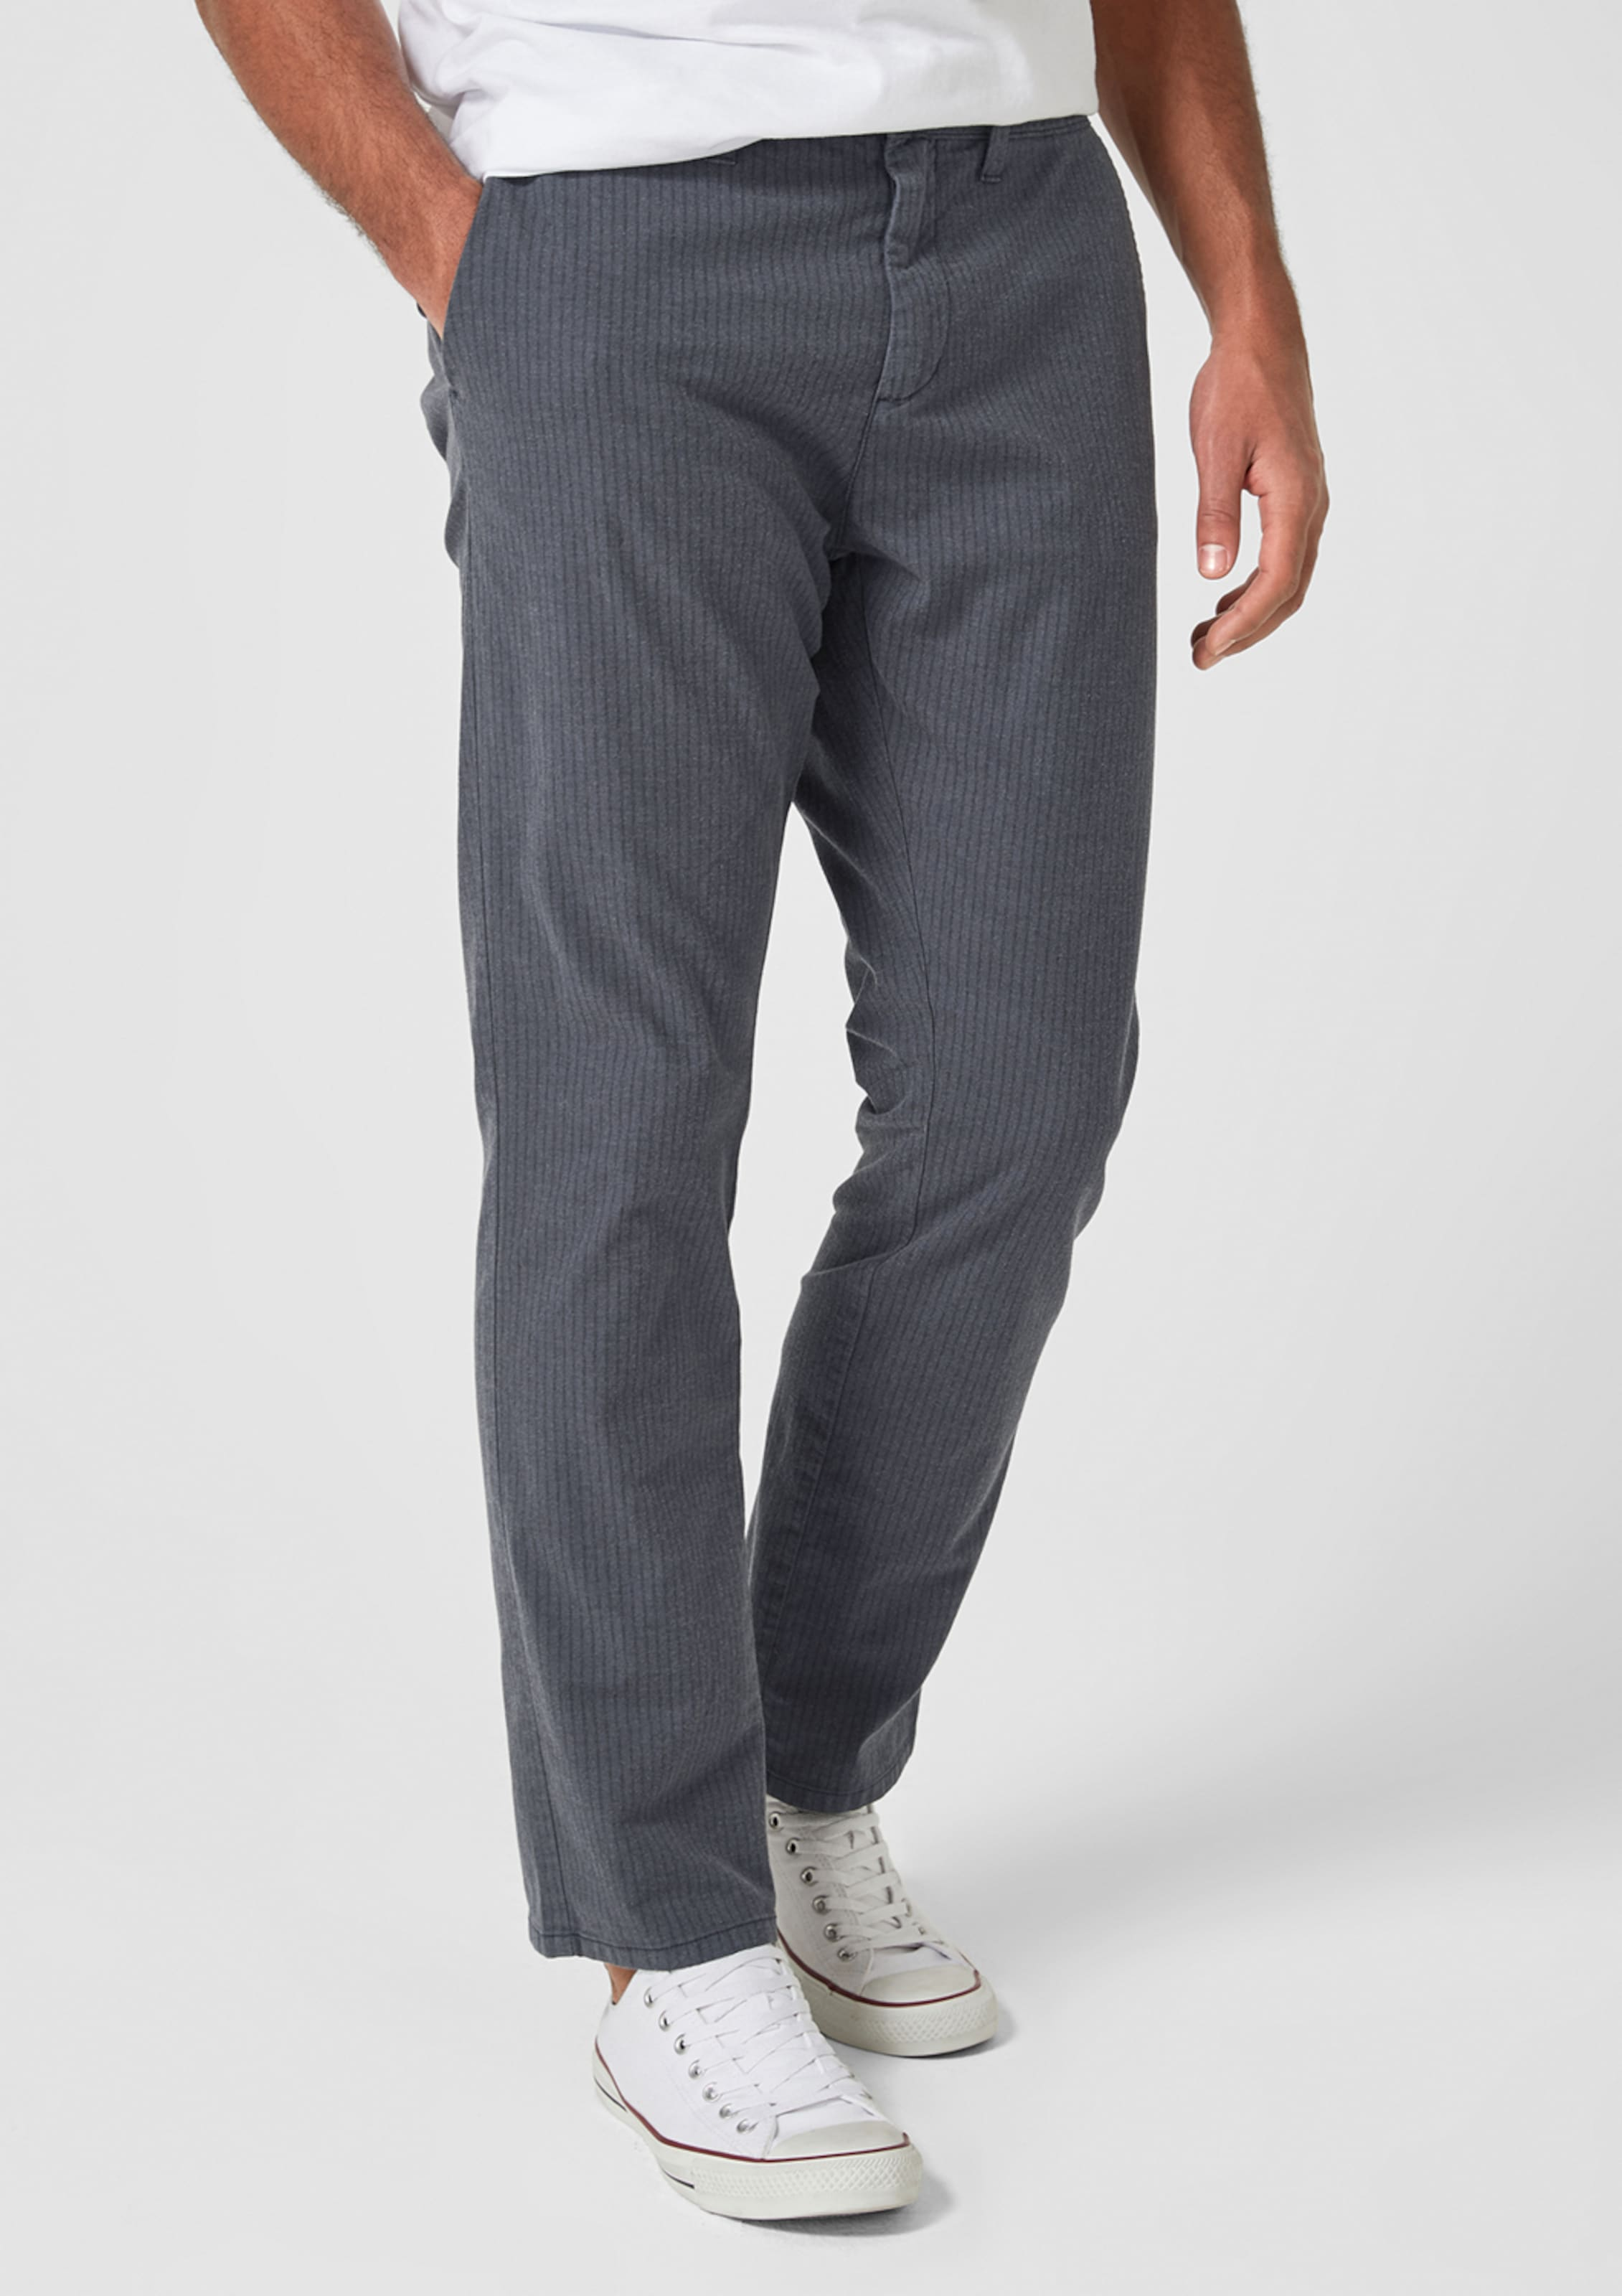 Red S In Chino oliver Label Taubenblau trdQsCxh